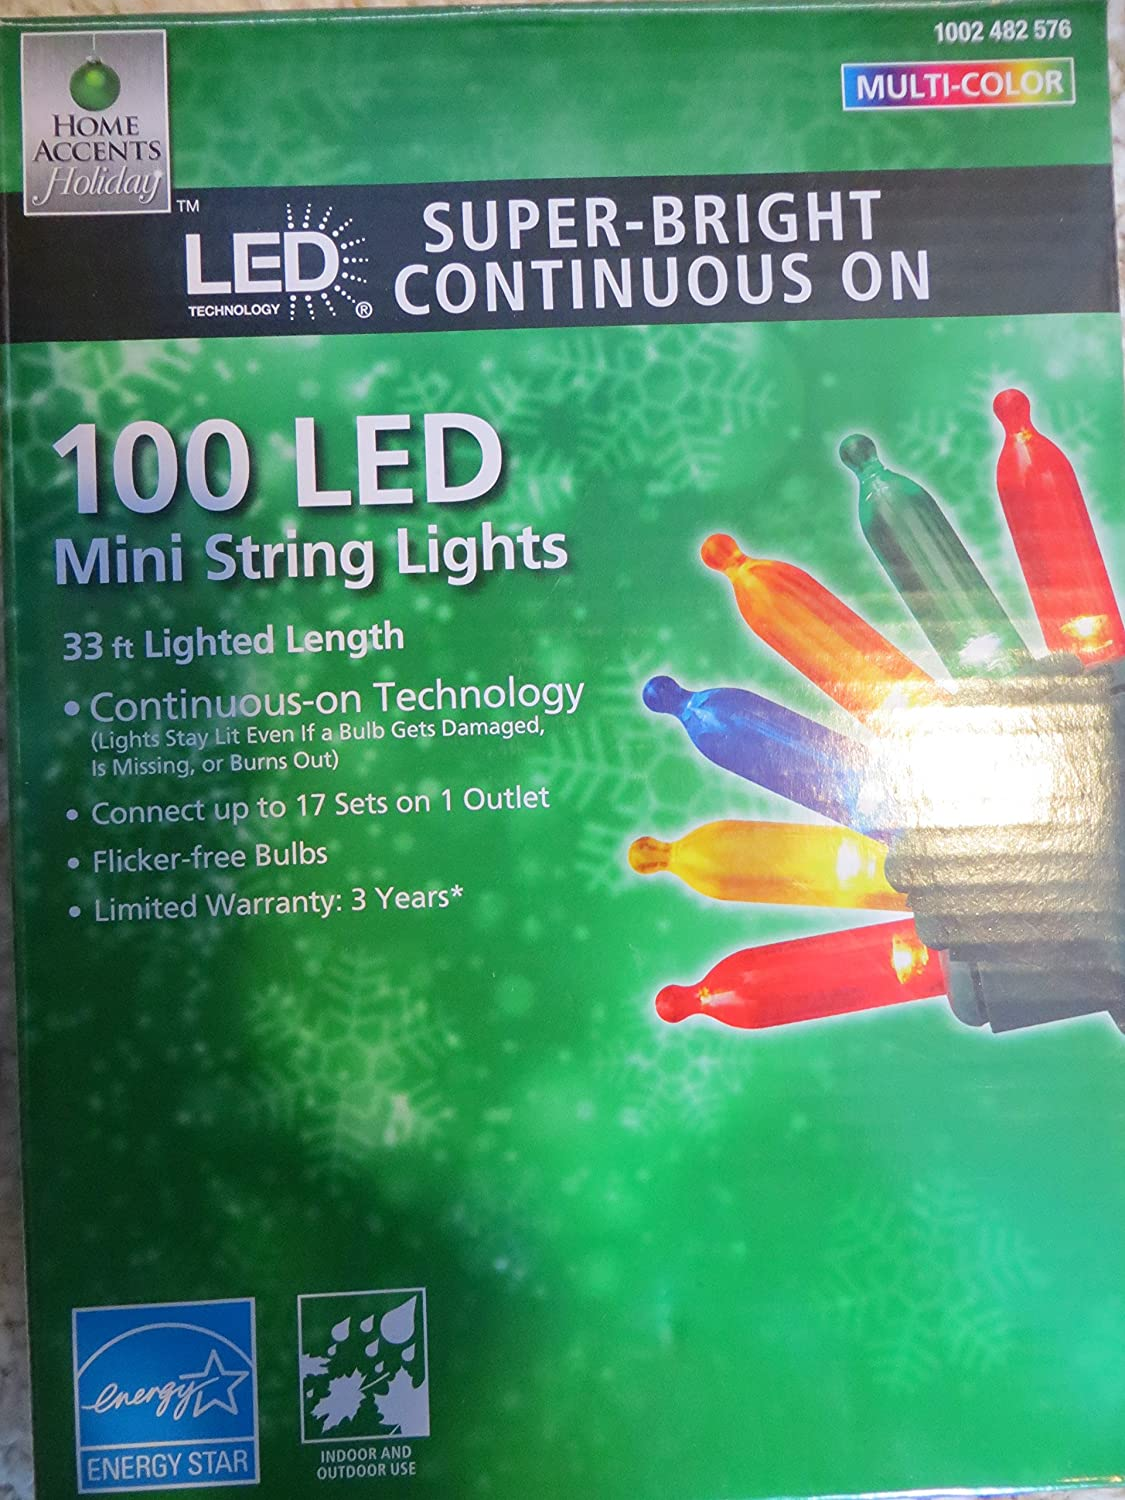 Home Accents 100 LED Multicolor Super Bright Continuous ON Mini Lights